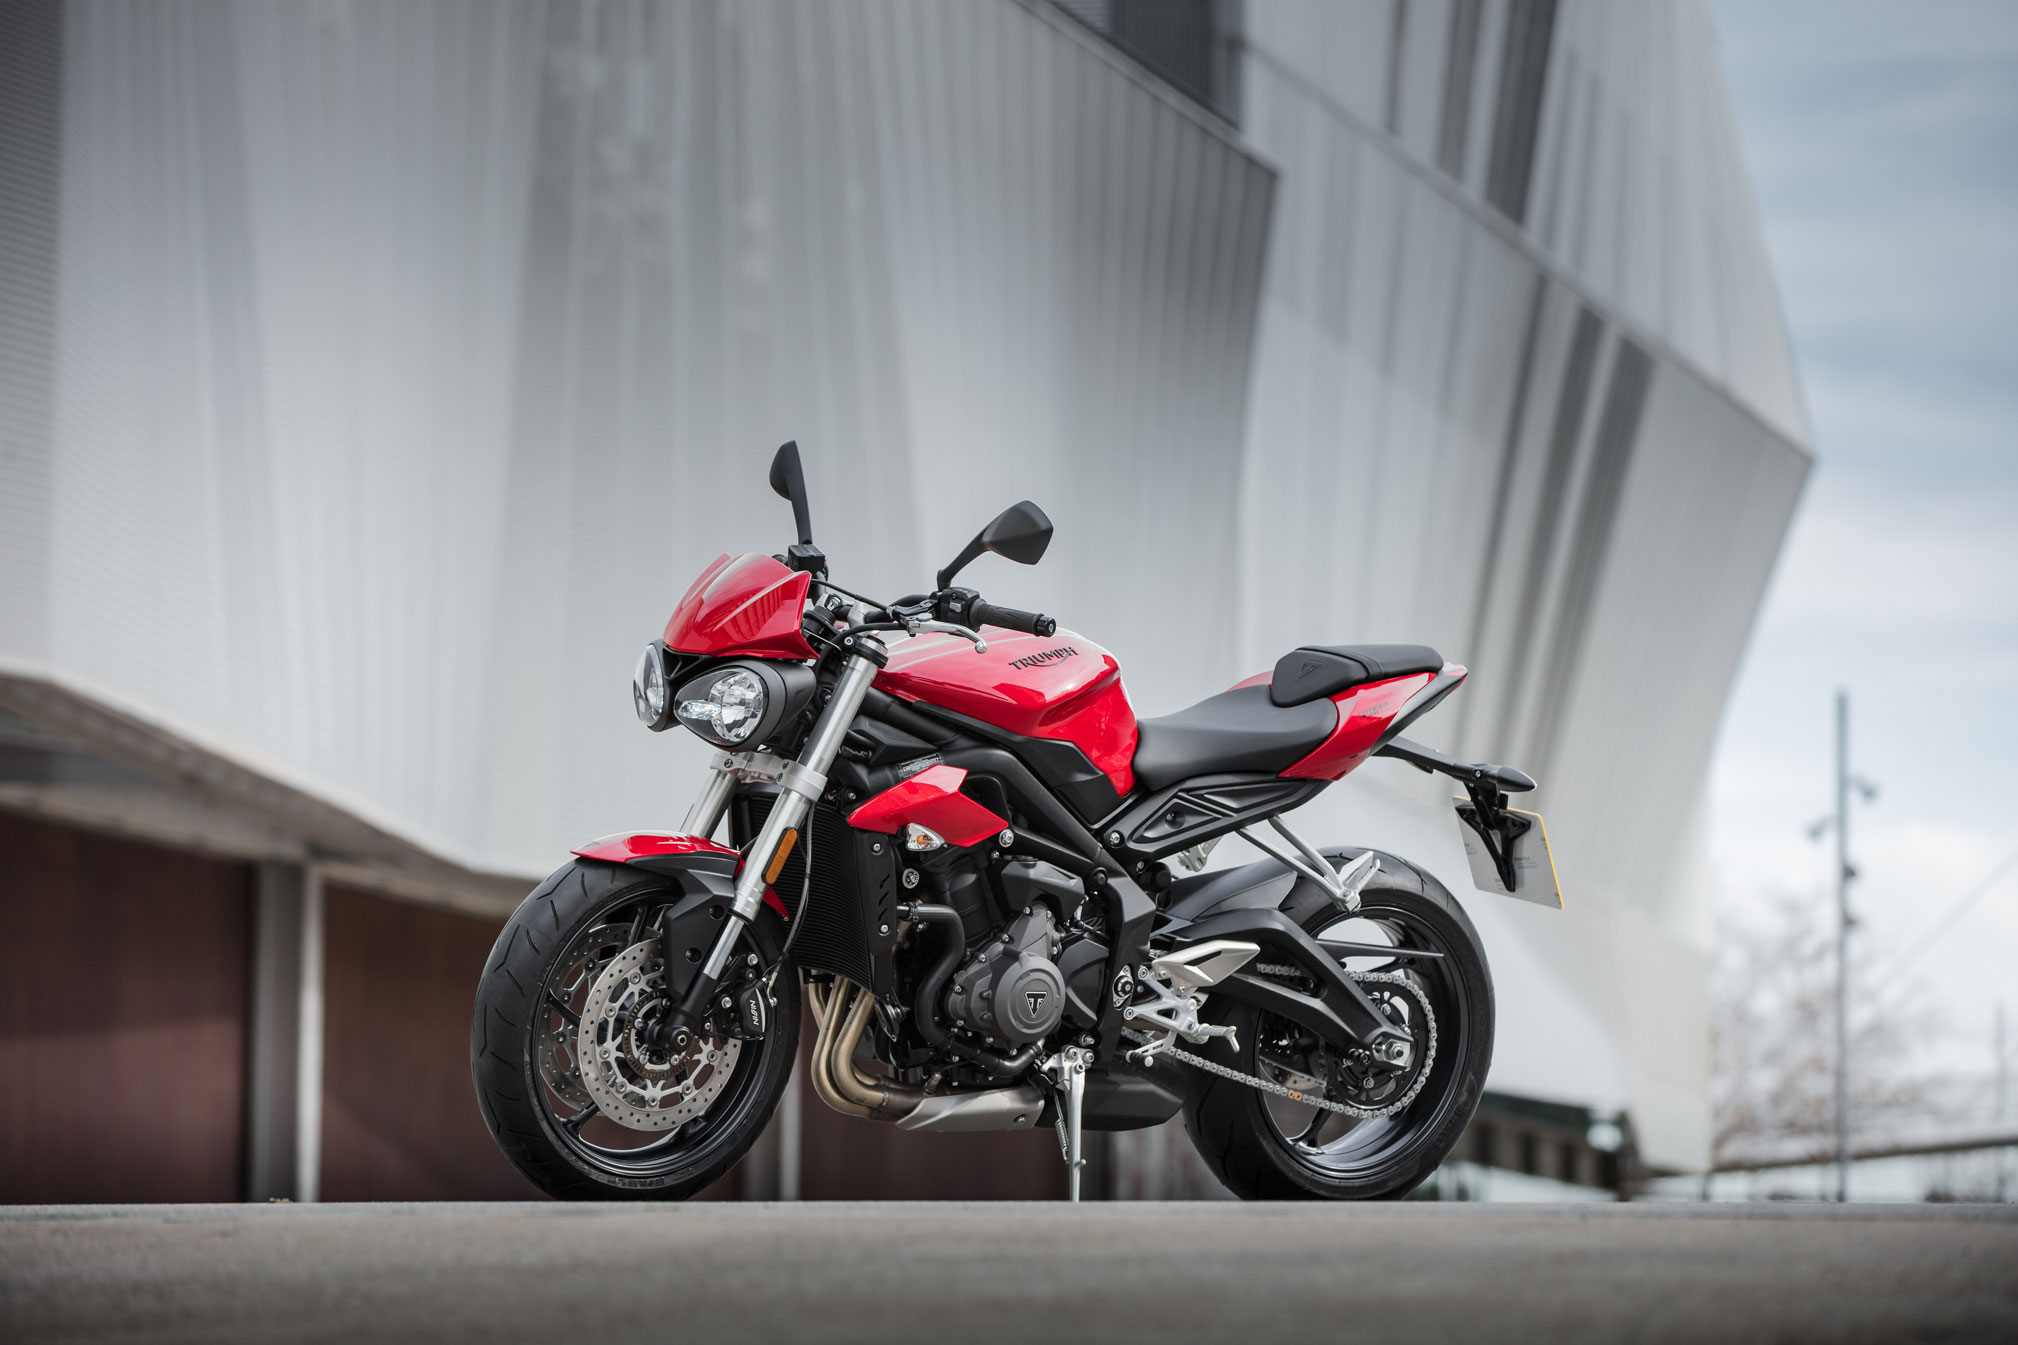 2018 Triumph Street Triple S Review on Conversion Of Unit